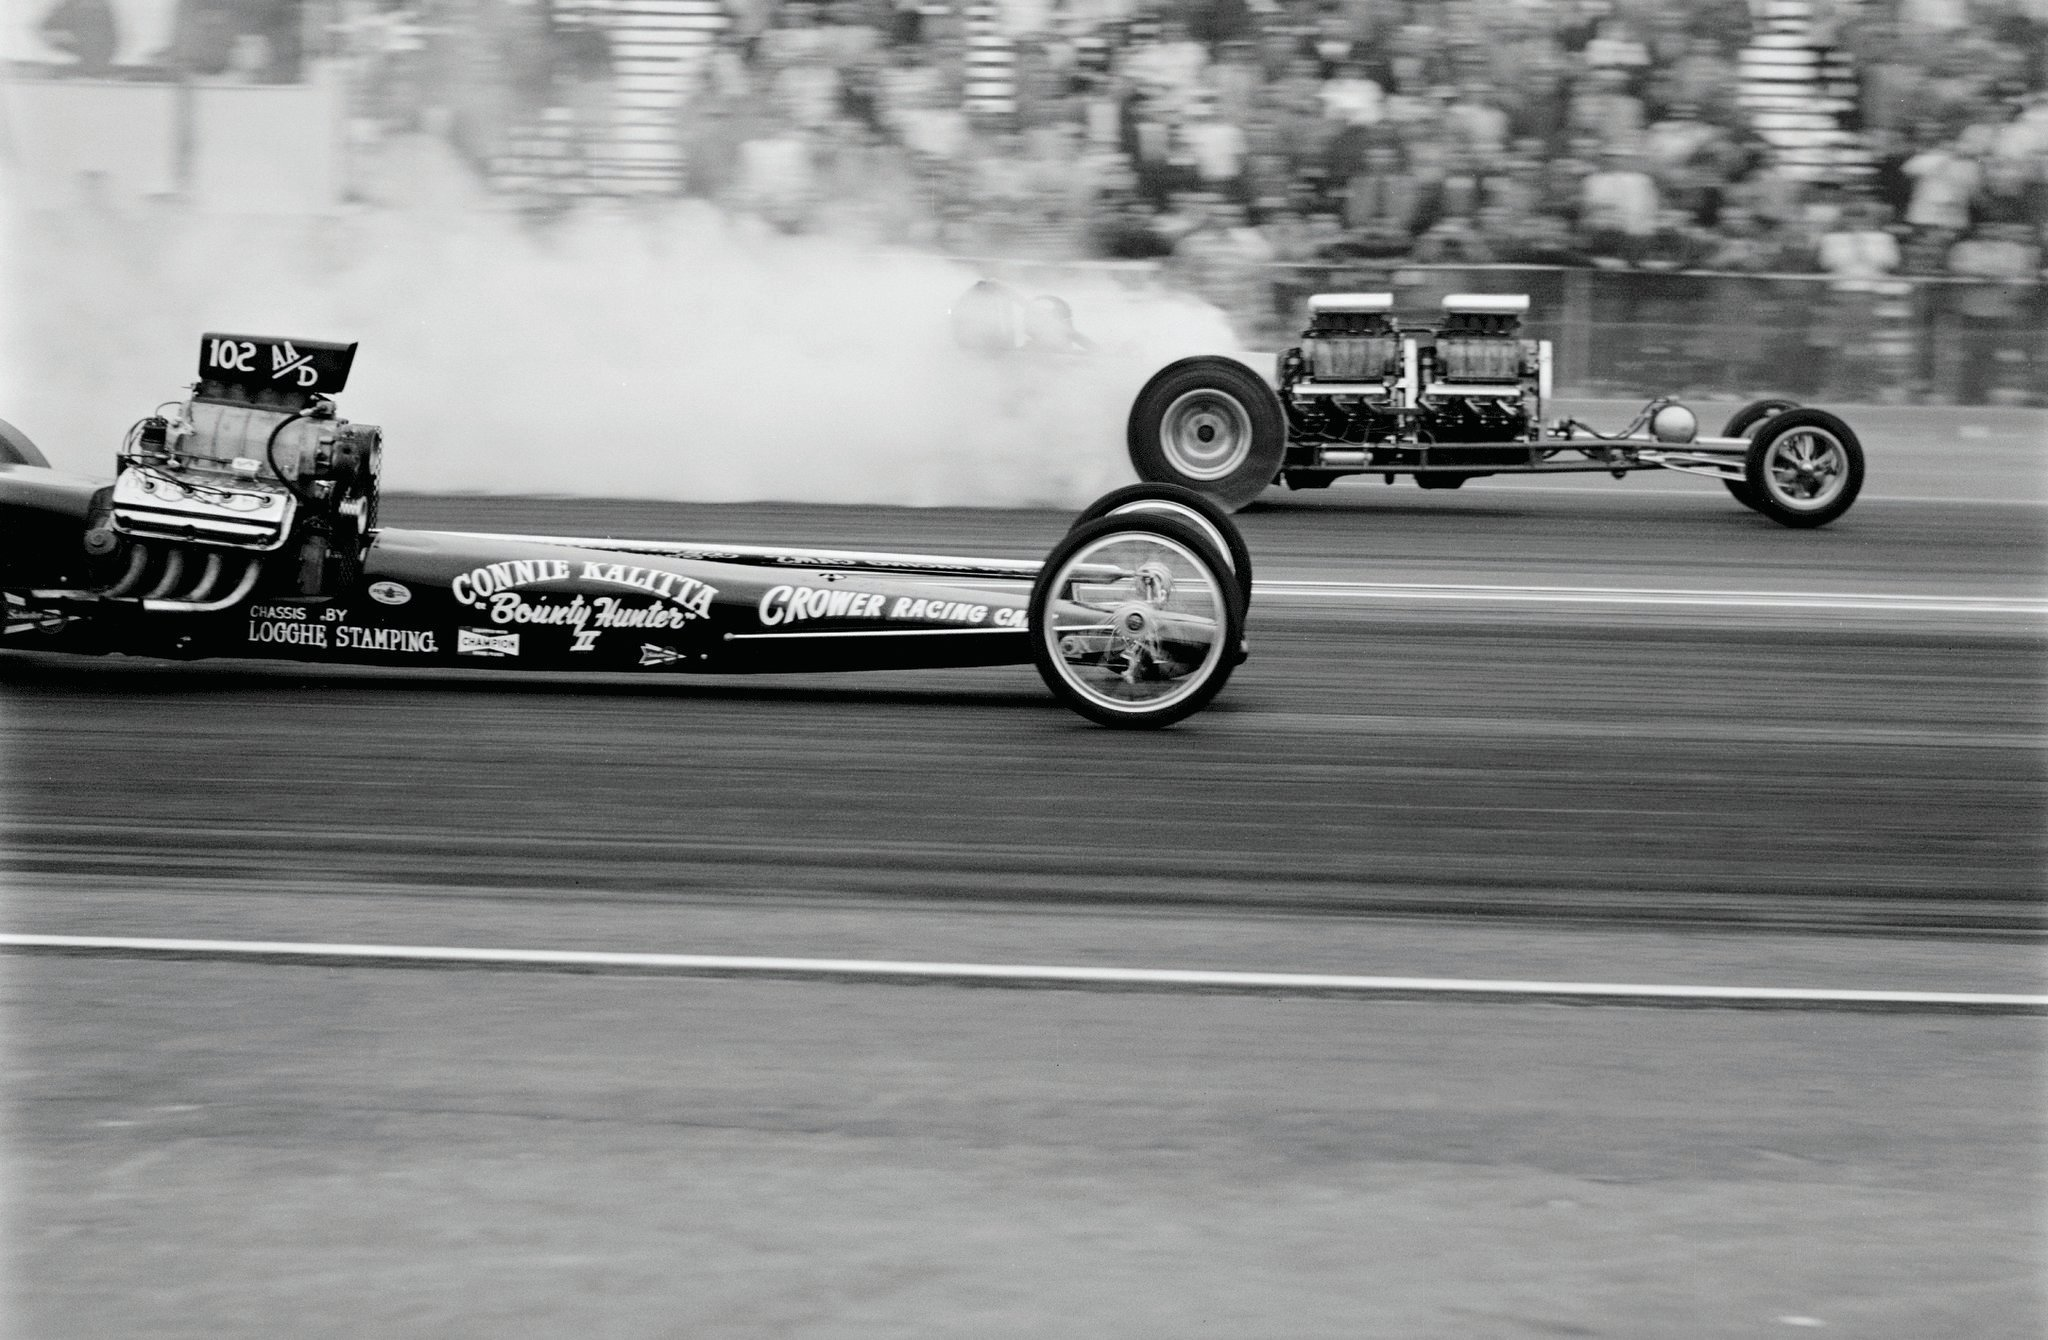 "Following frustrating outings at NHRA's '59 Nationals and '61 Winternationals, local kids John Peters and Nye Frank, both 23, notched two major upsets on the same February weekend at Pomona. Their homebuilt beast first beat touring pro Connie Kalitta in Saturday's AA/Dragster class trophy dash, and again in Sunday's ""Winter Top Eliminator"" final. (The unfilled grandstands and a HOT ROD photo of these cars in opposite lanes lead us to believe that this is the class race; not Sunday's grand finale, as previously reported.) A clean sweep of the third annual Winternationals further included both low e.t. (8.36) and a top speed on gas (185.18) that was faster than some fuelers' times. More memorable yet was the postrace masquerade that successfully concealed their driver's identity. The entry form—and subsequent press coverage—erroneously named Peters (second from right, inset) to prevent Bob Muravez's disapproving father, also his employer, from learning that Bobby was disobeying family orders to vacate the seat."